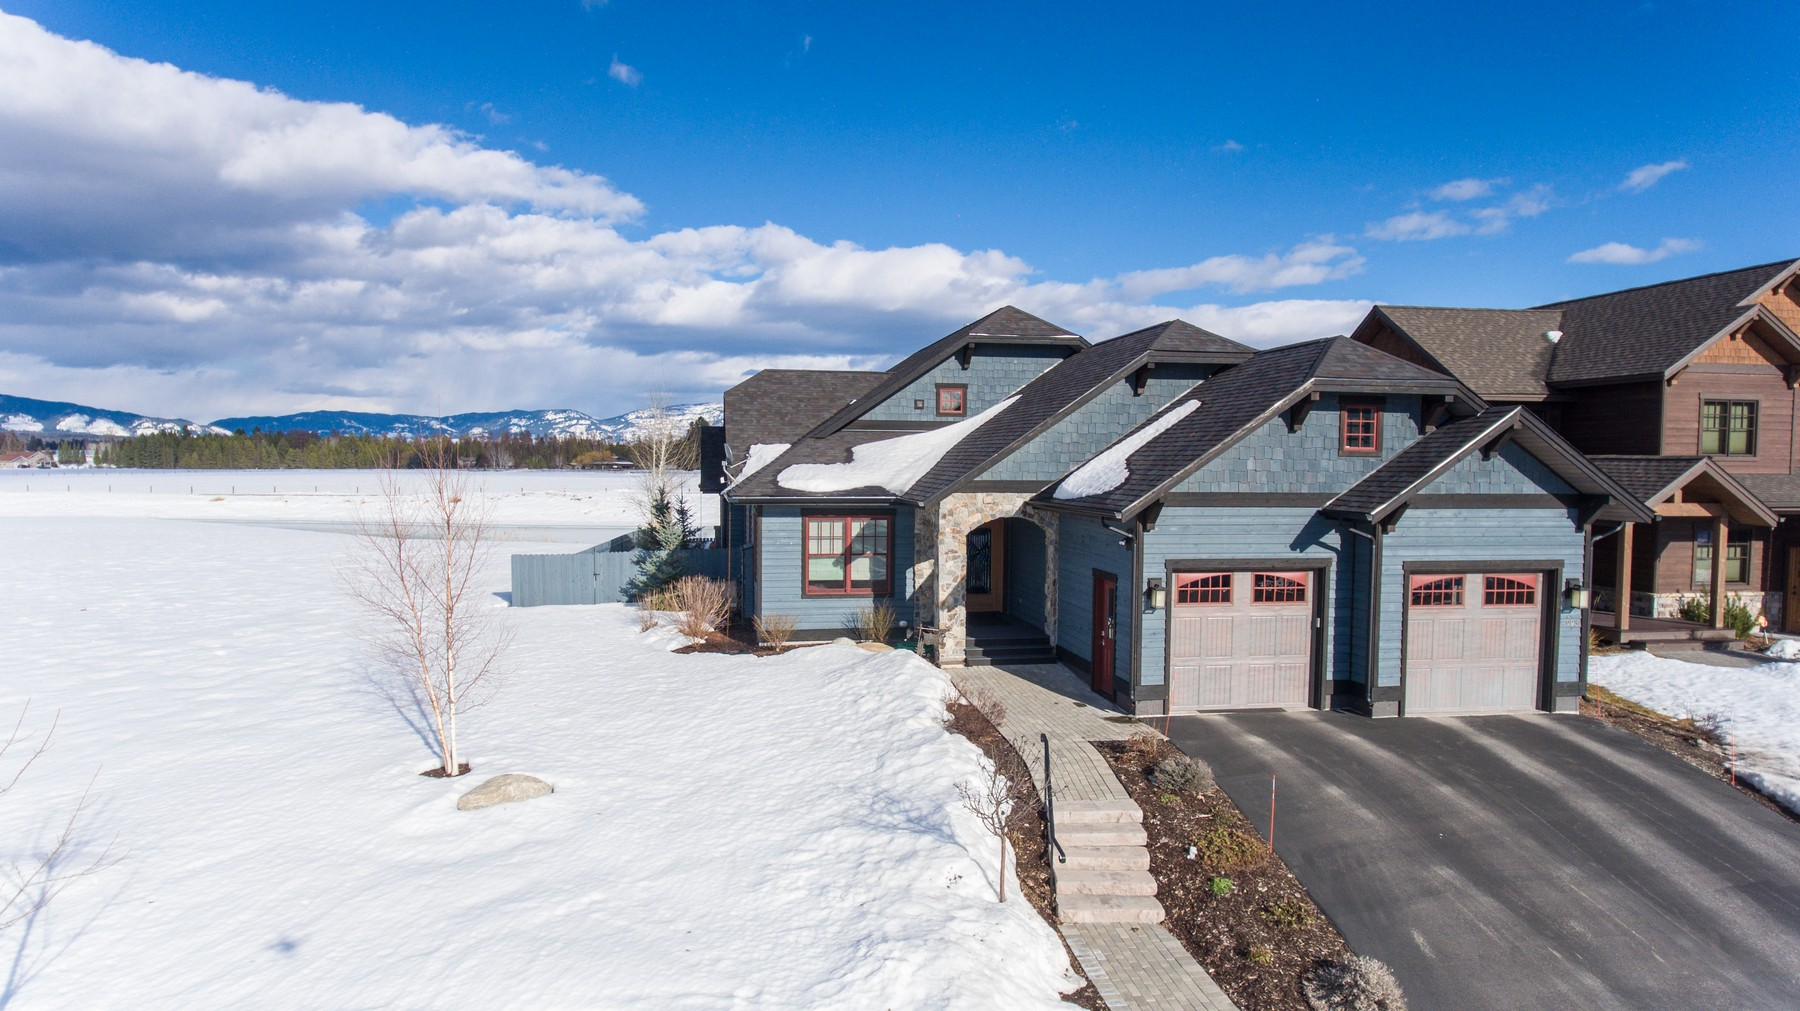 Additional photo for property listing at 4993 Flatwater Dr , Whitefish, MT 59937 4993  Flatwater Dr Whitefish, Montana 59937 United States